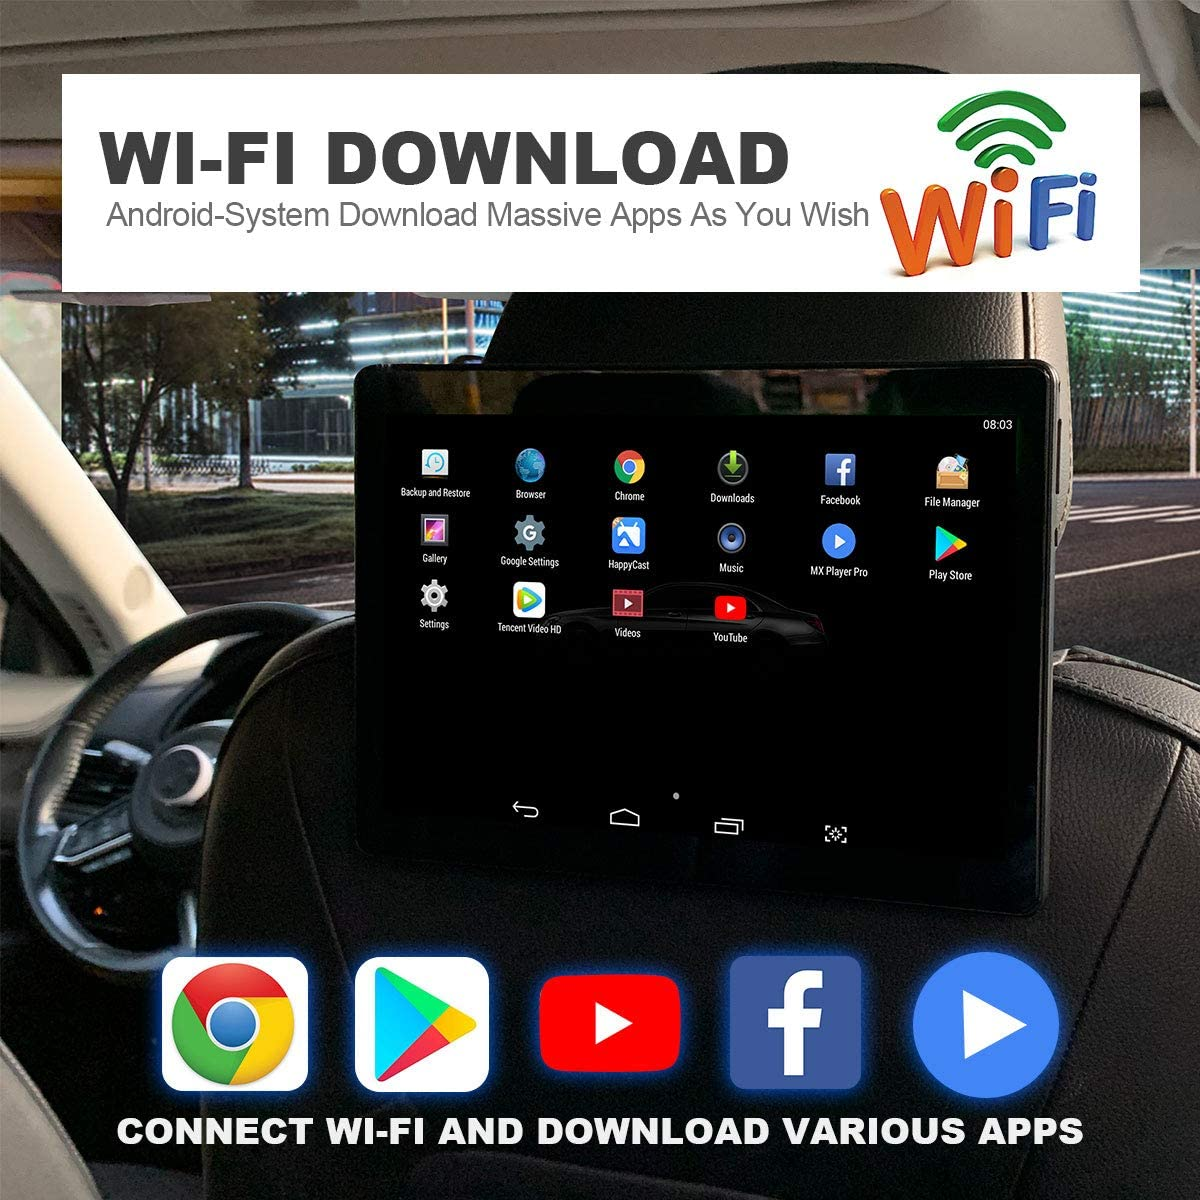 LISIMKE 10.1 inch One Android Headrest Video Players with WiFi IPS Touch Screen Play Movies Sync Screen Tablets Phone Mirror Car Back Seat TV Monitors